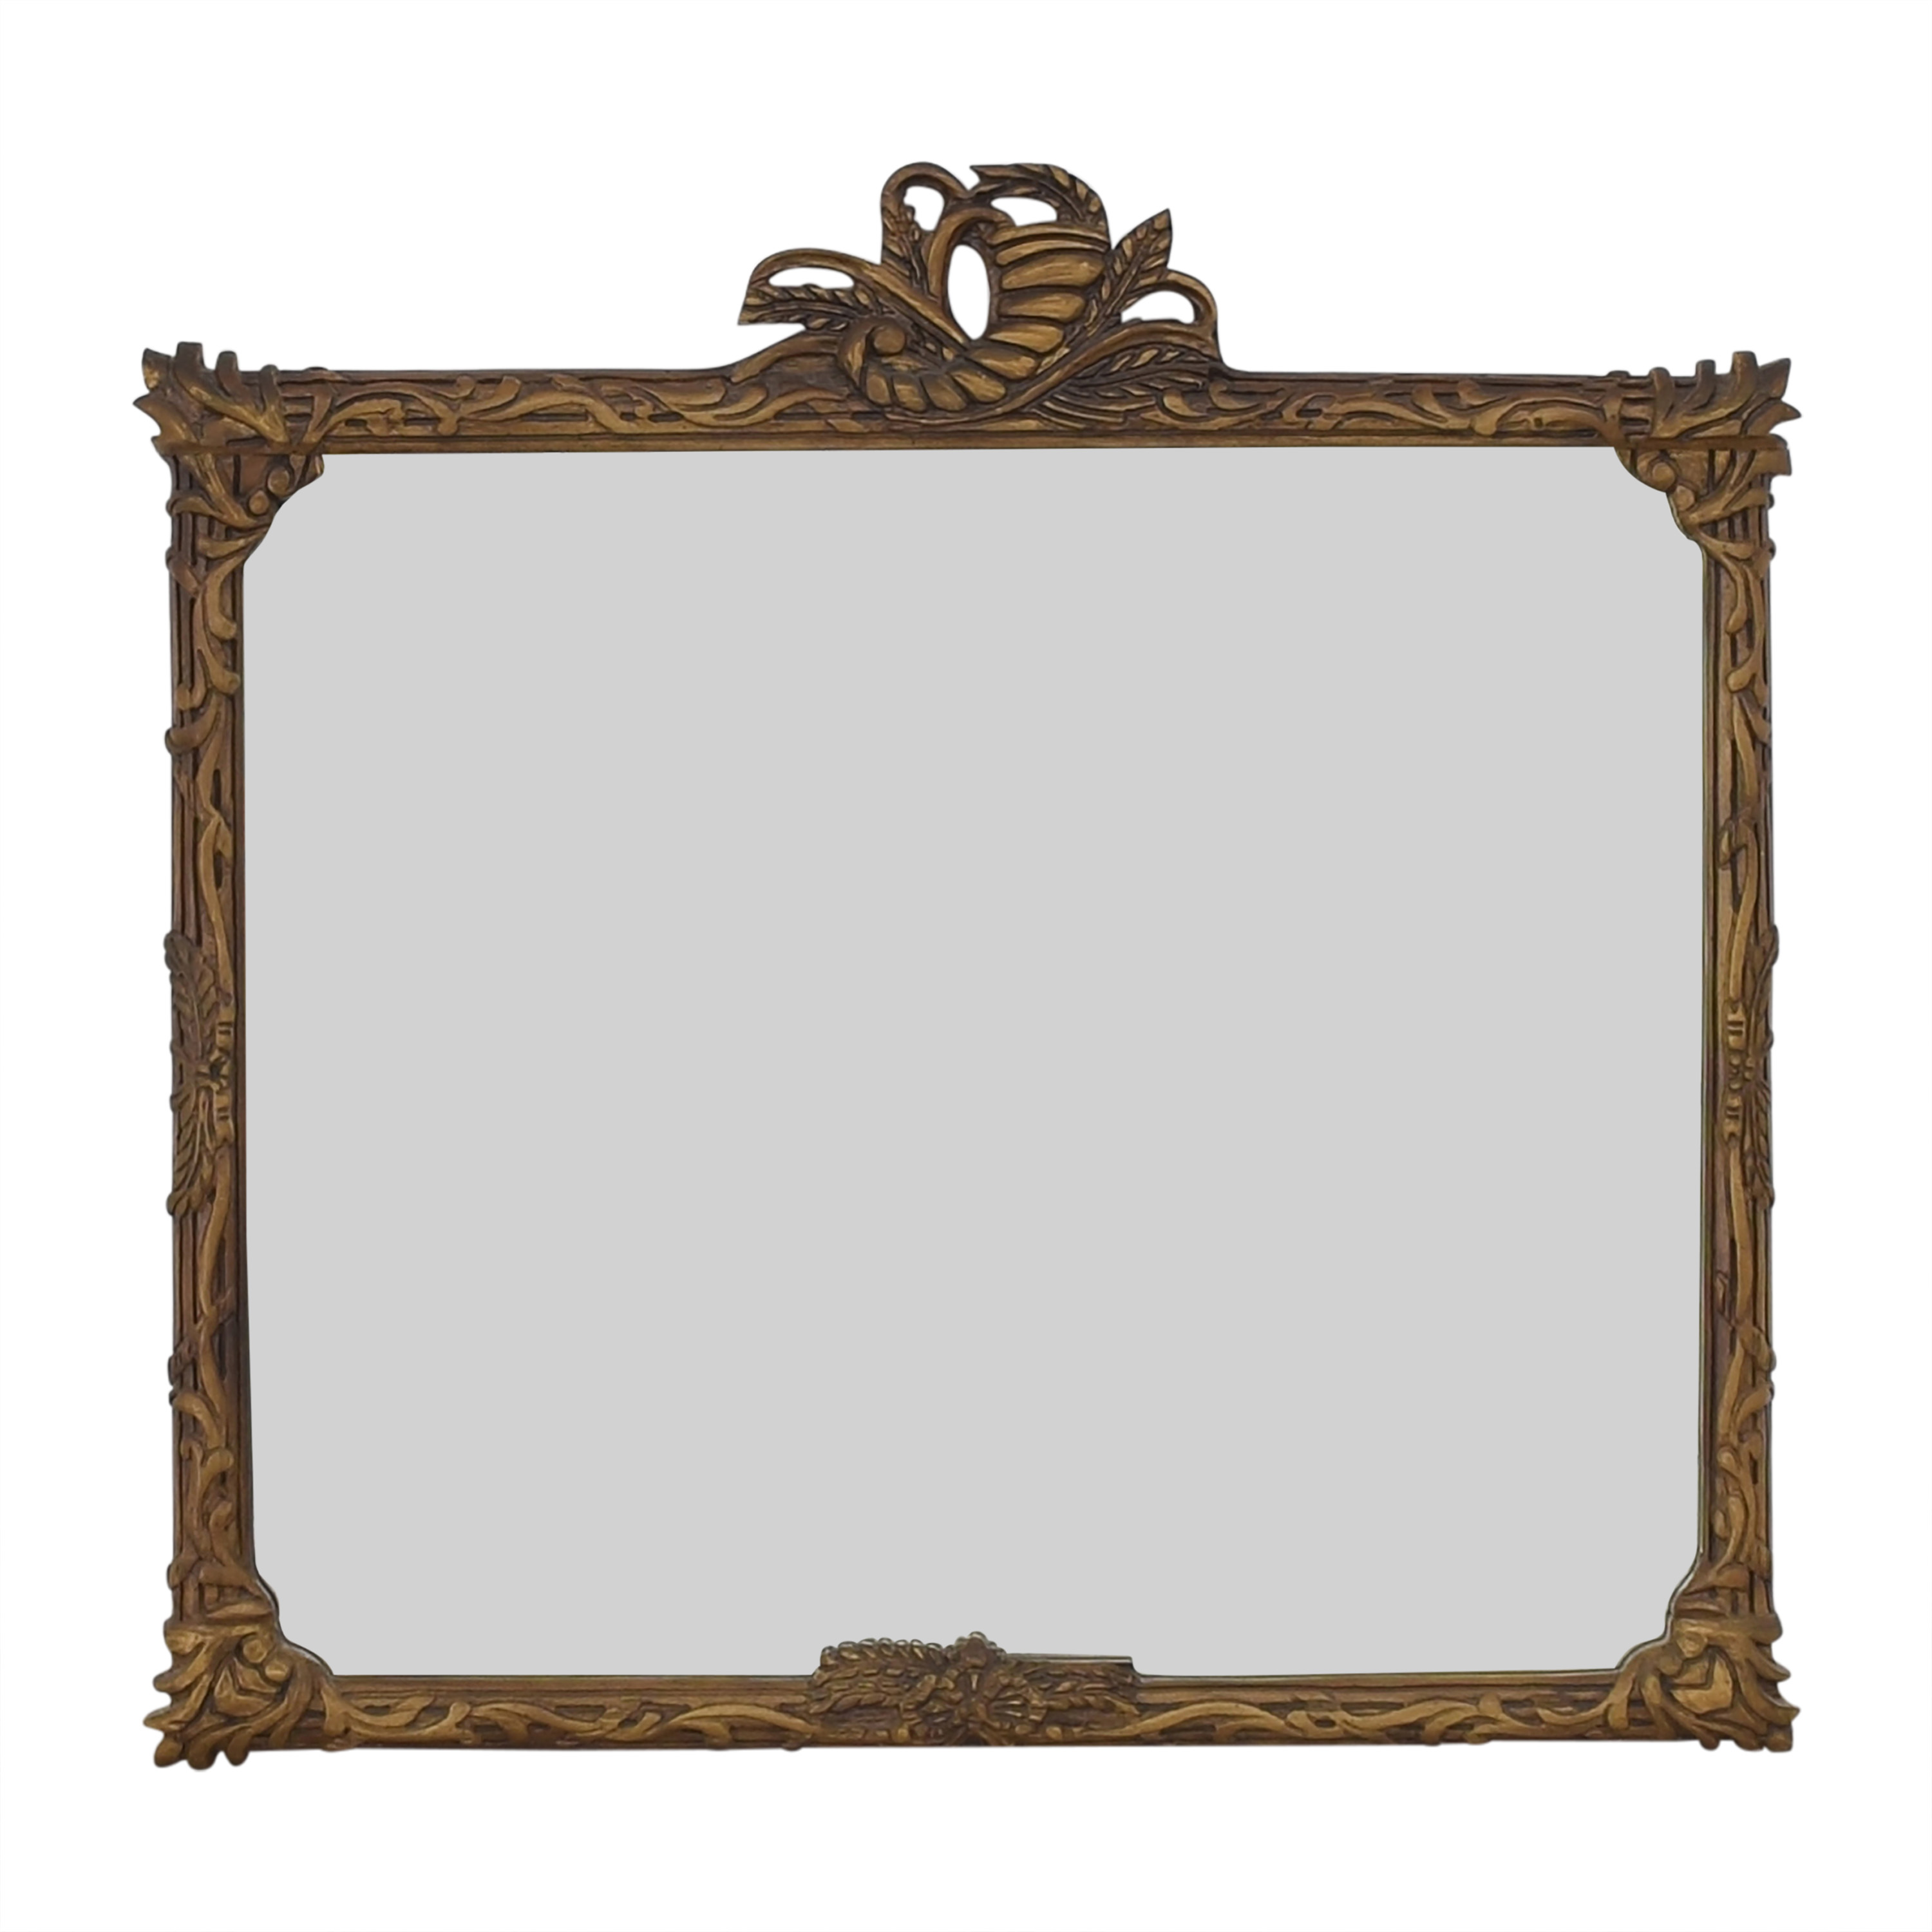 Wall Mirror with Carved Frame nj